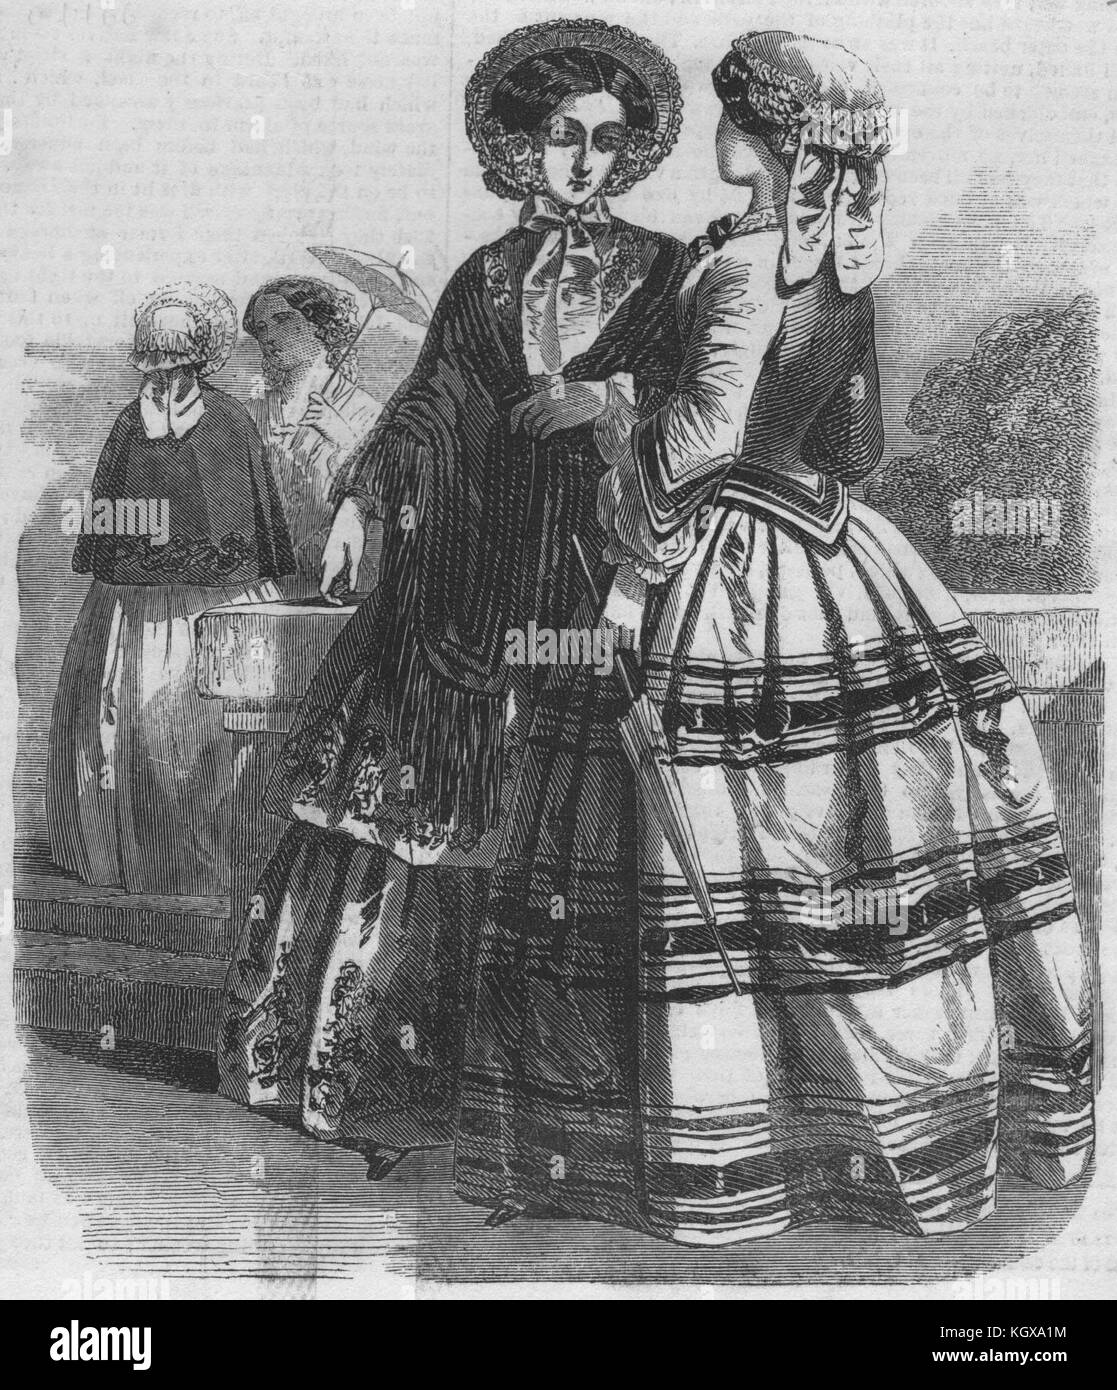 Paris fashions for May 1852. The Illustrated London News - Stock Image